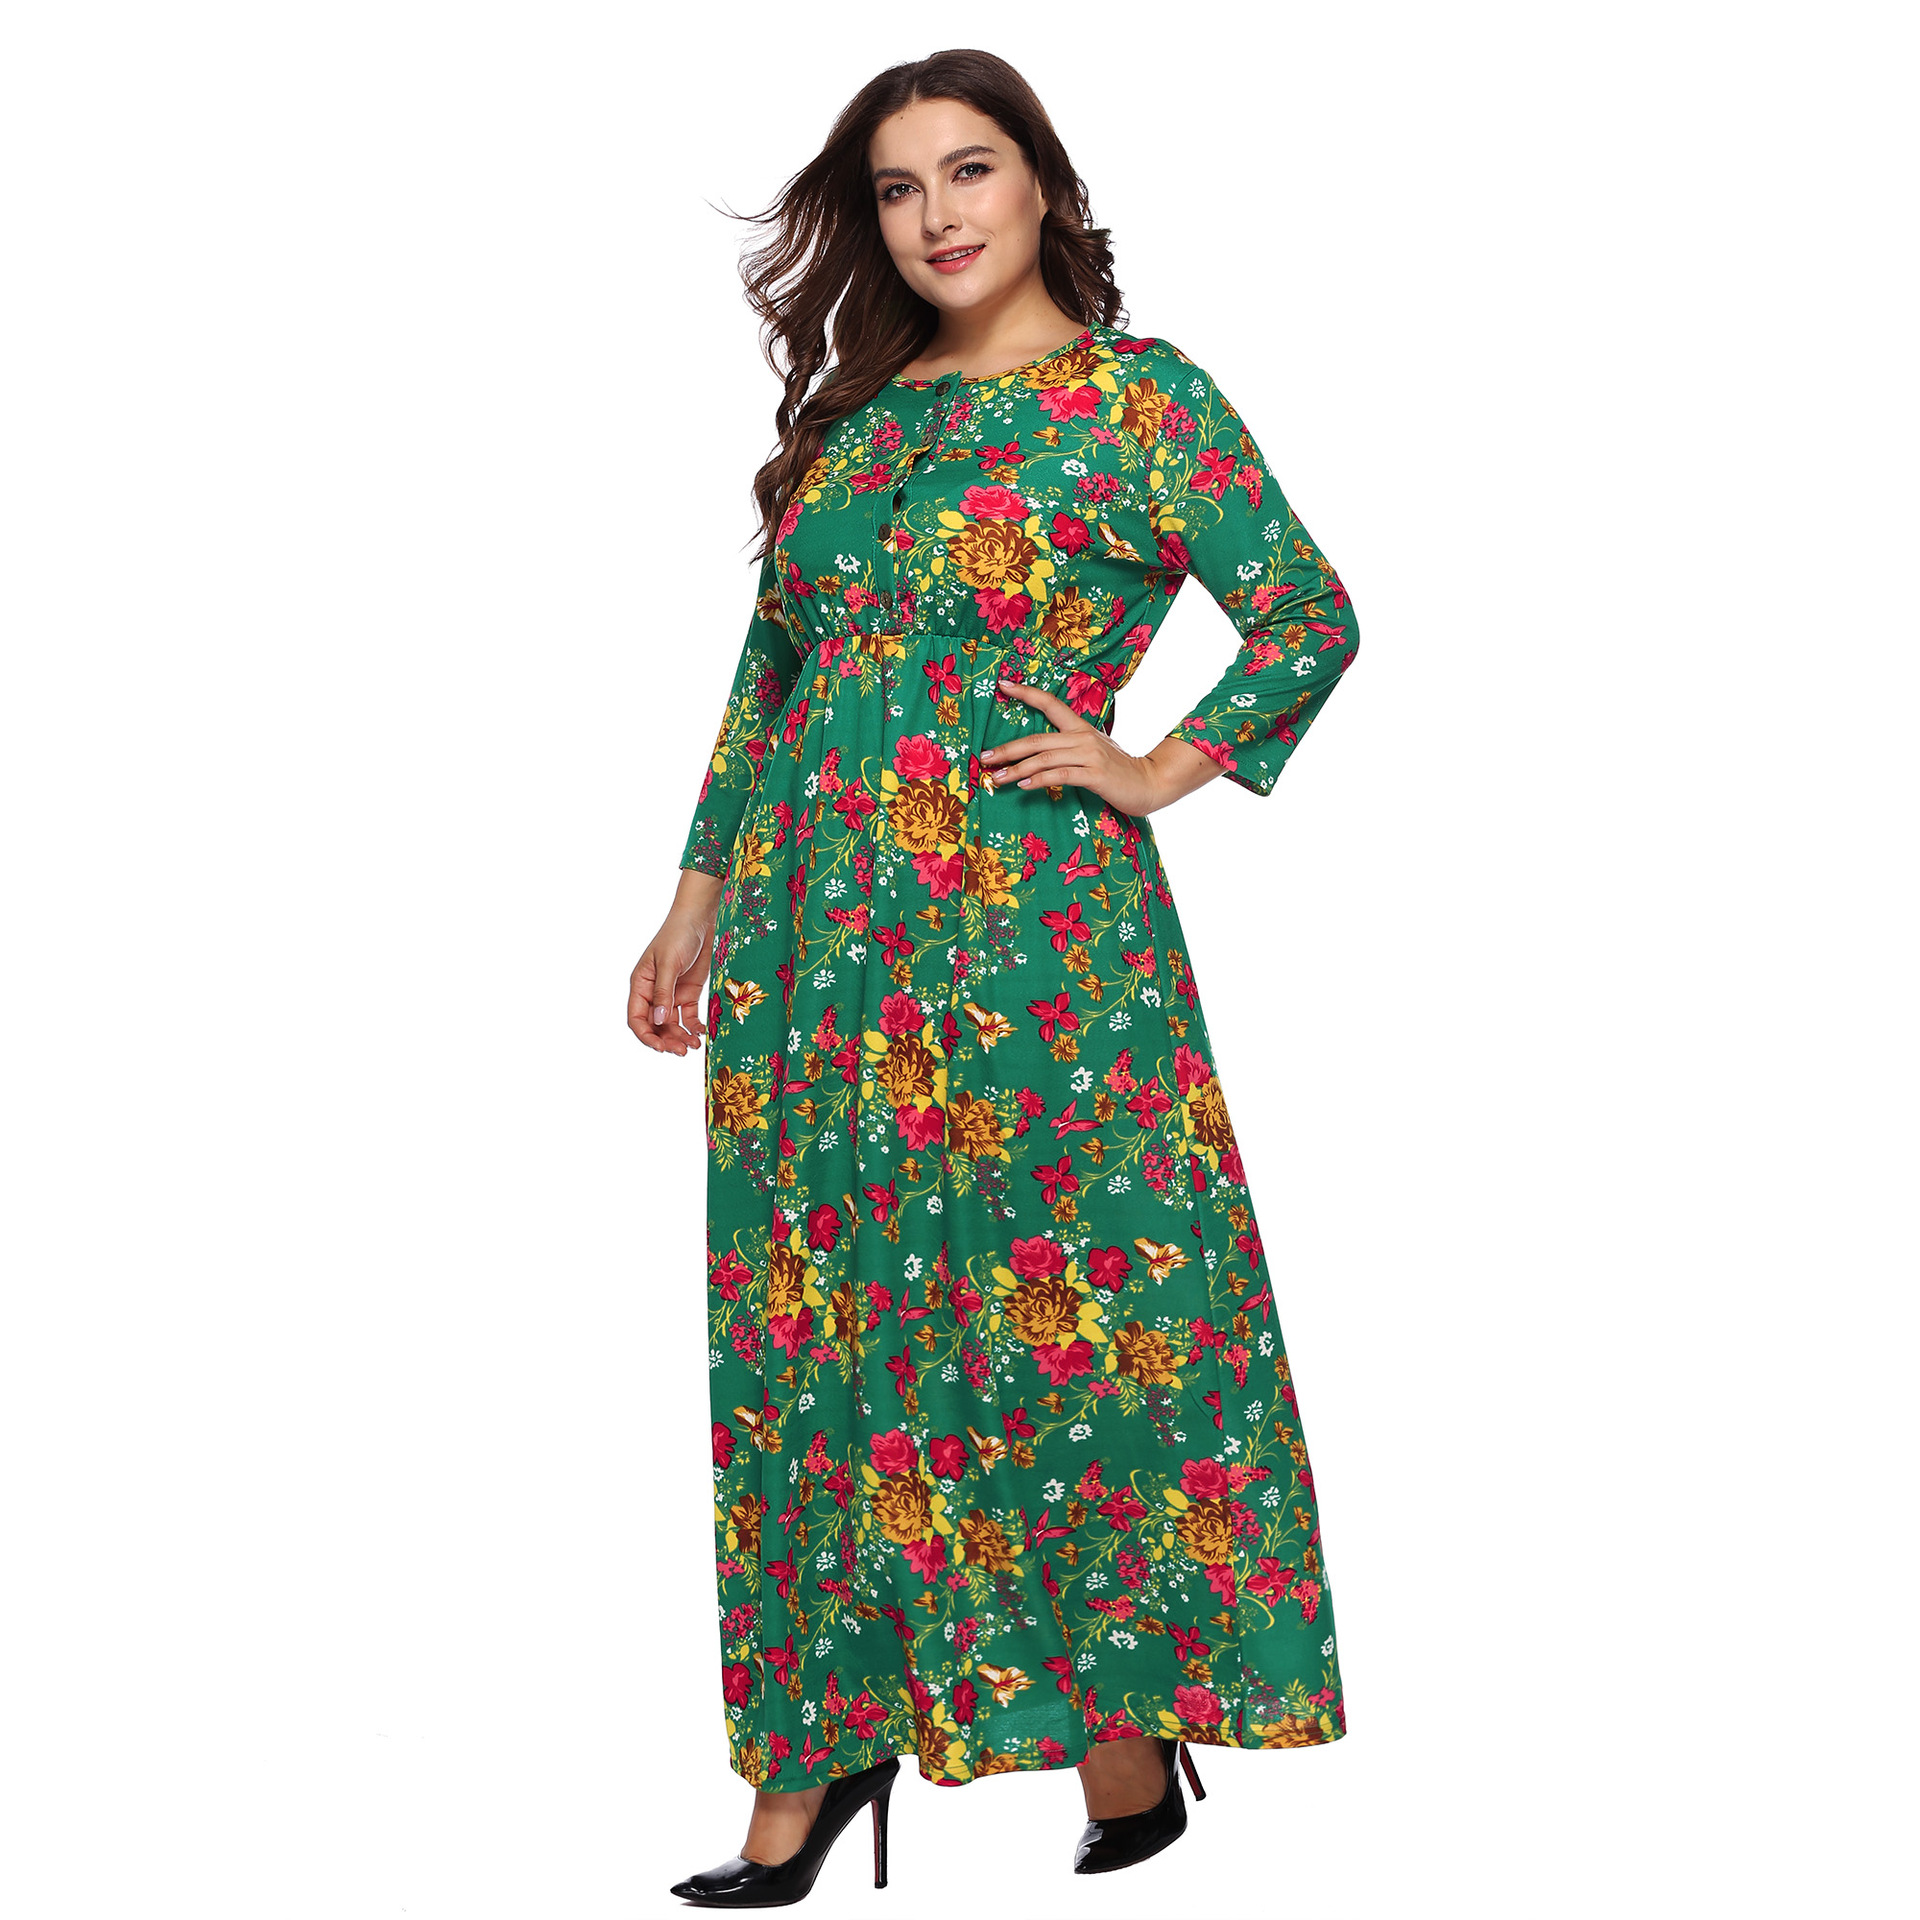 Large Size Dress Hot Selling Printed Dress Three-quarter-length Sleeve Button Waist Hugging Dress A11005